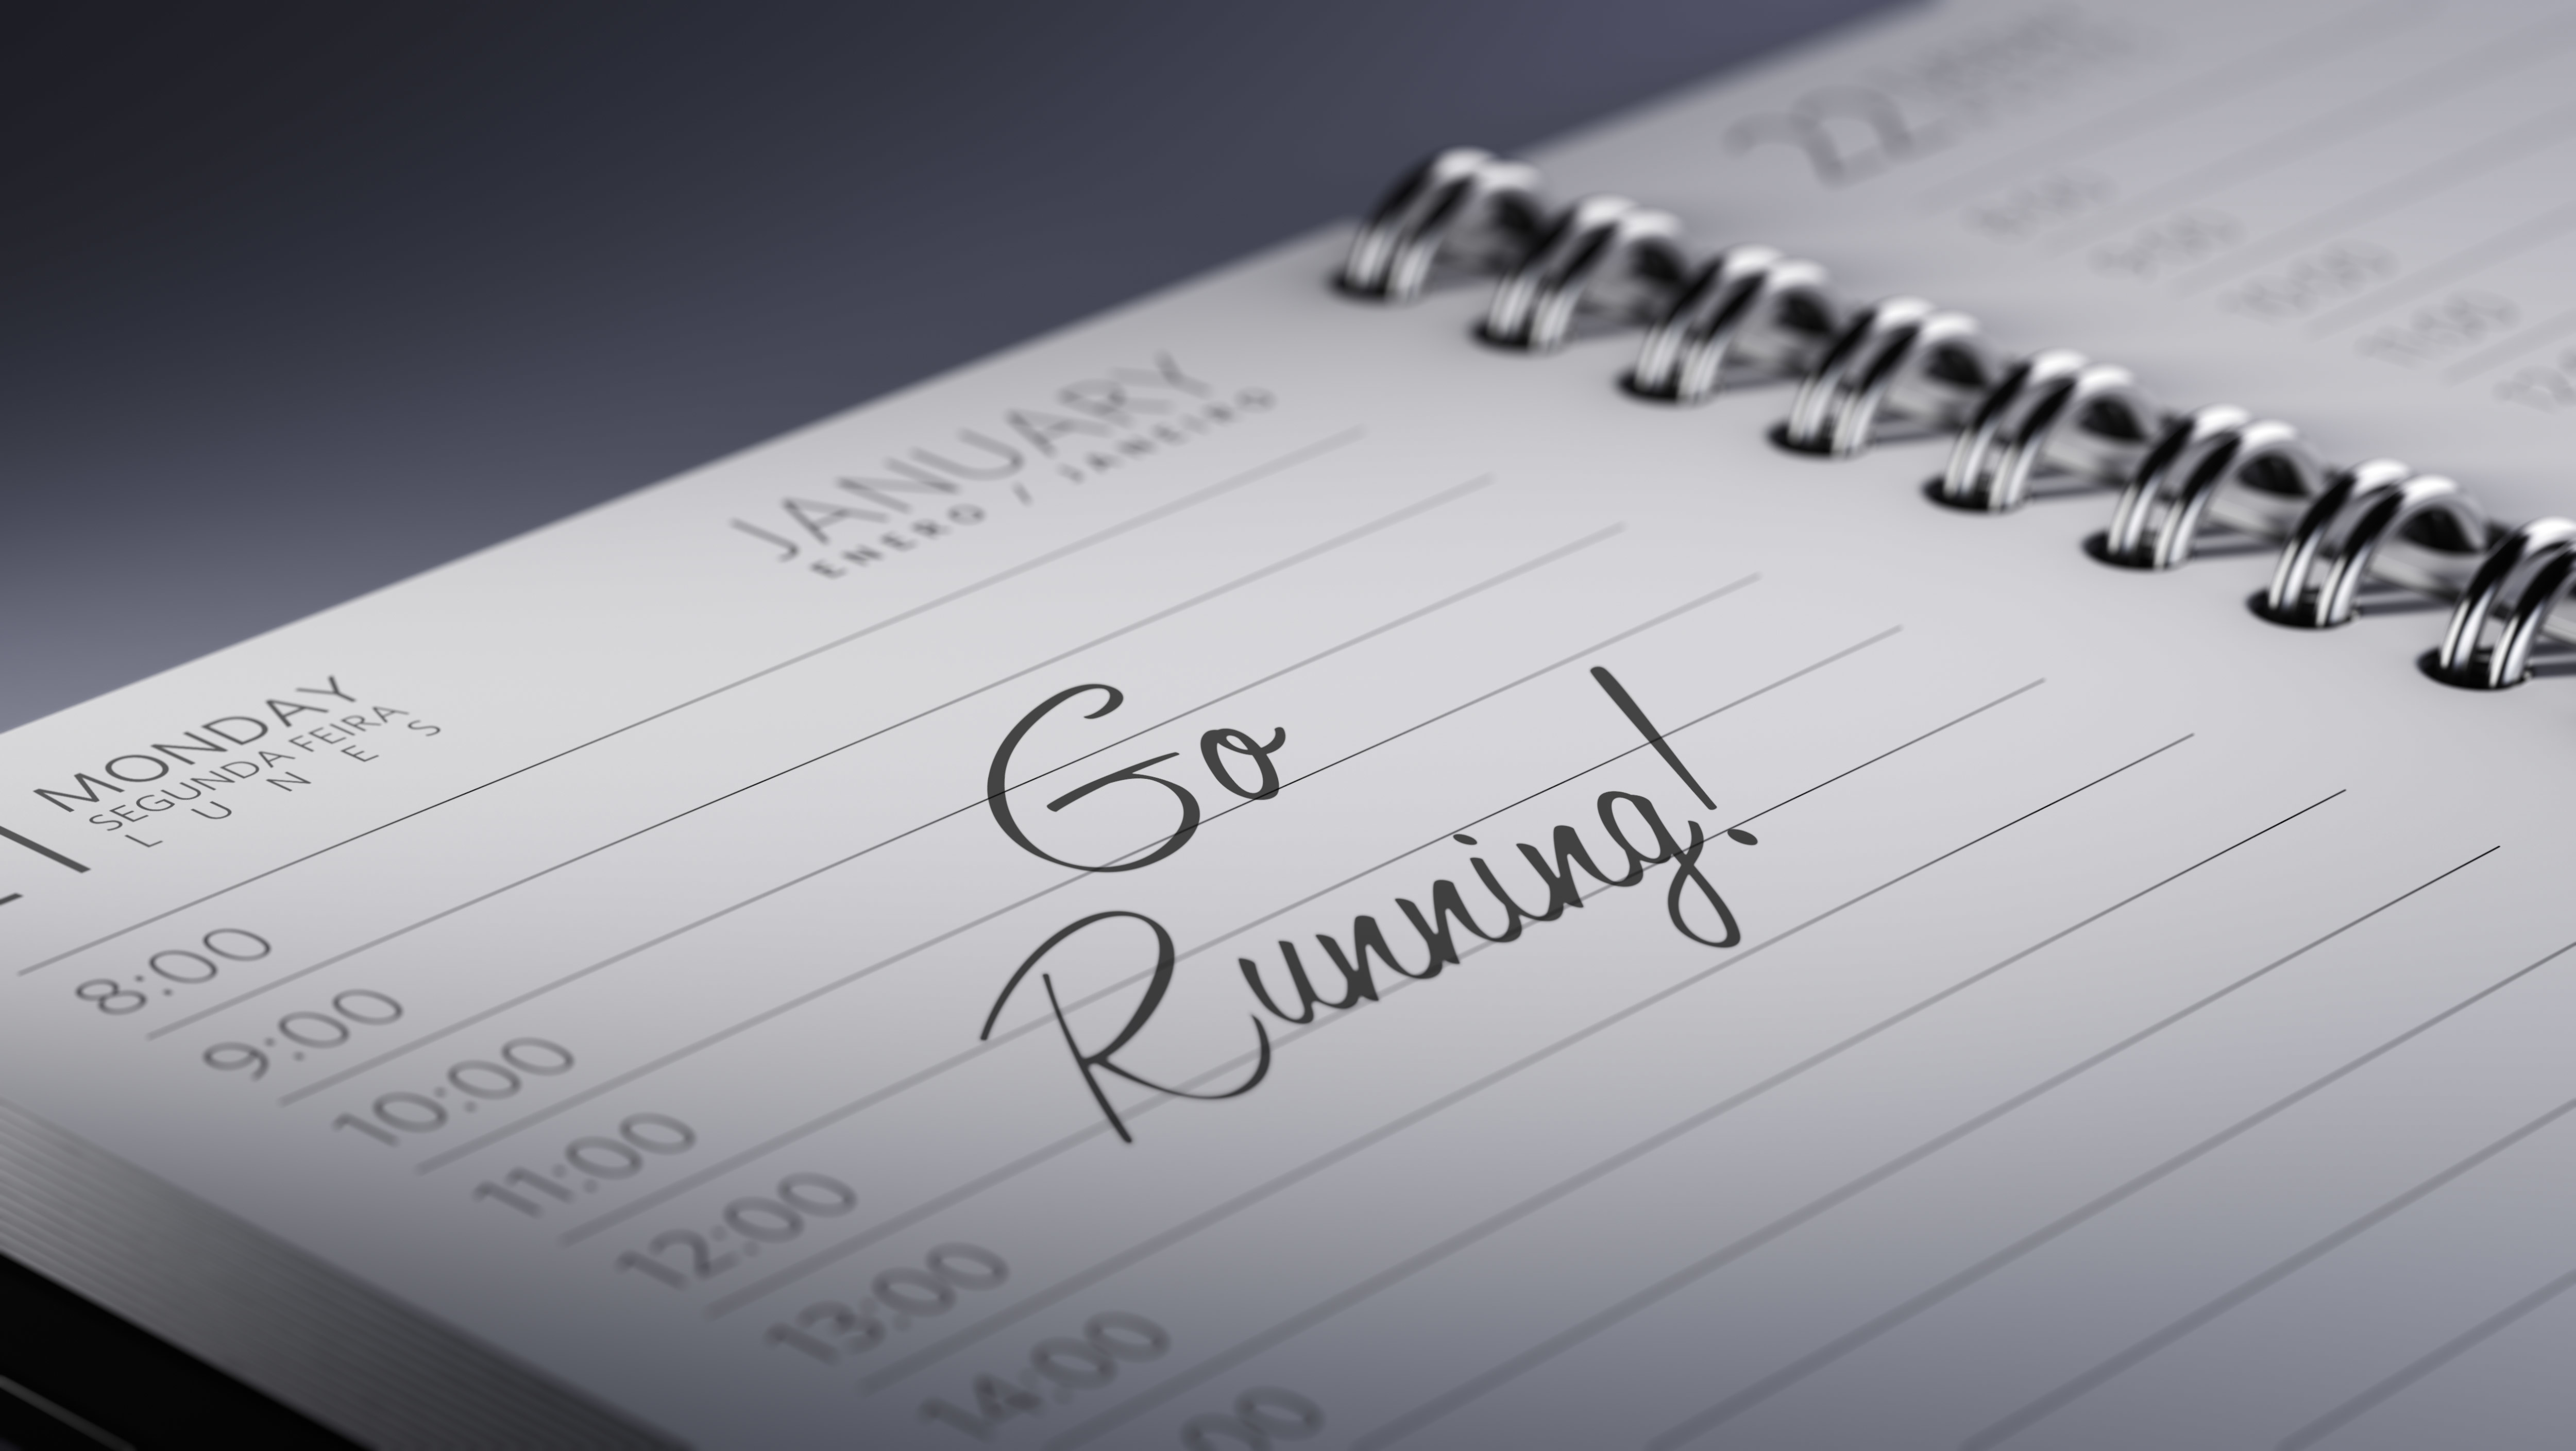 Running: Tapering and Racing